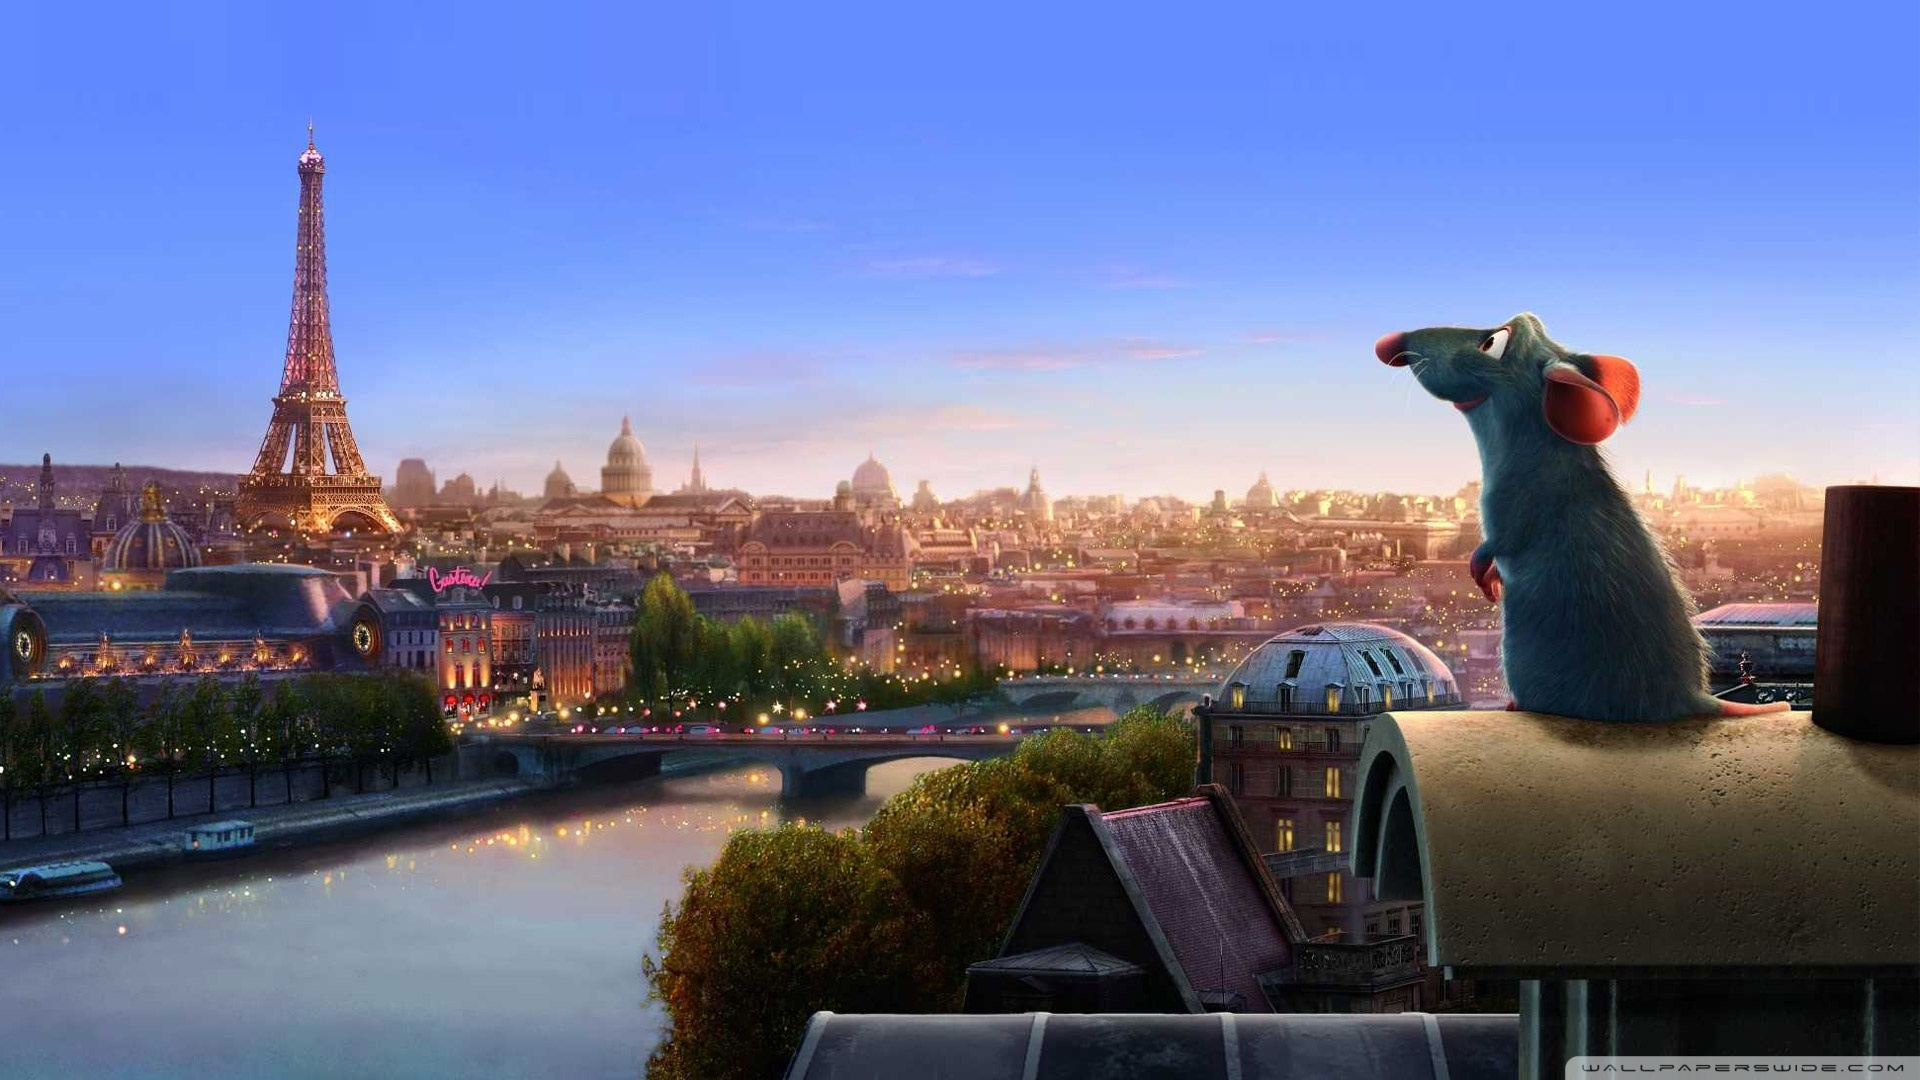 Ratatouille Pictures